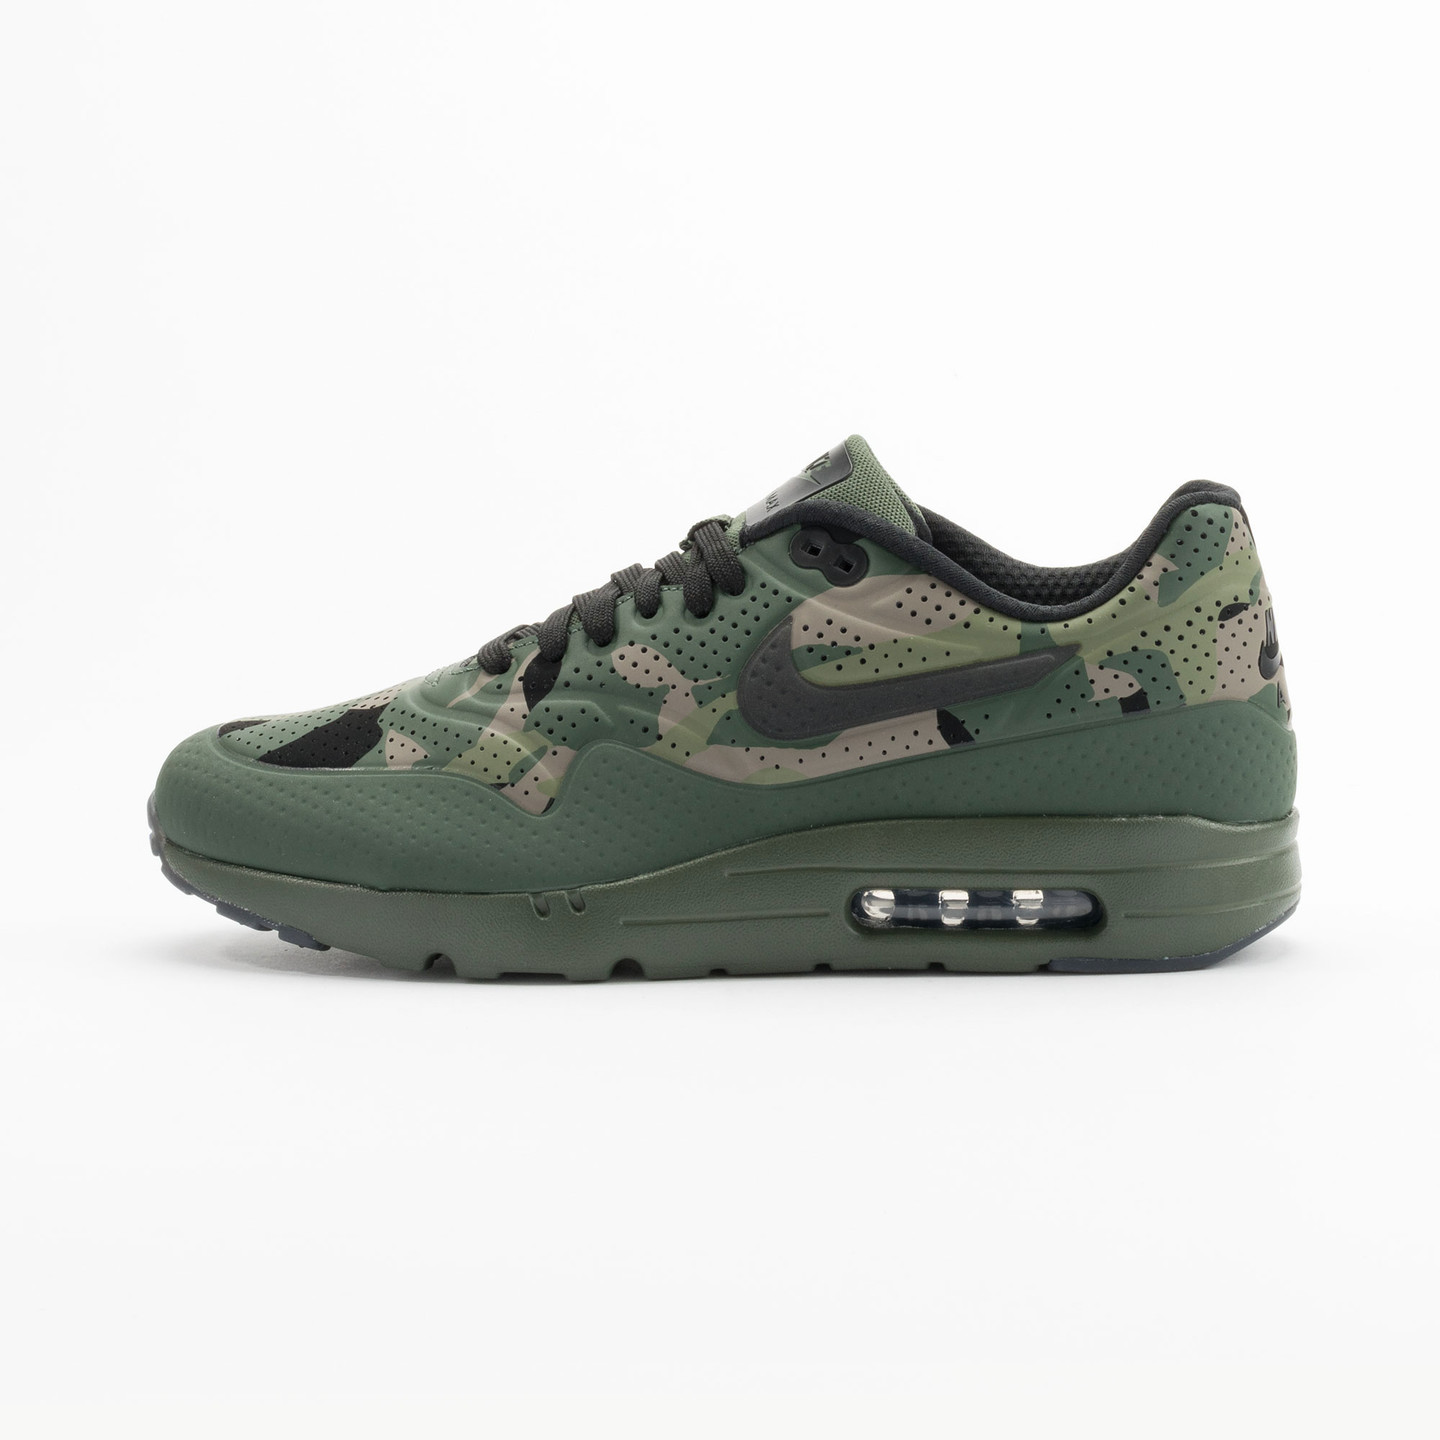 Nike Air Max 1 Ultra Moire Print Camouflage / Carbon Green 806851-300-44.5